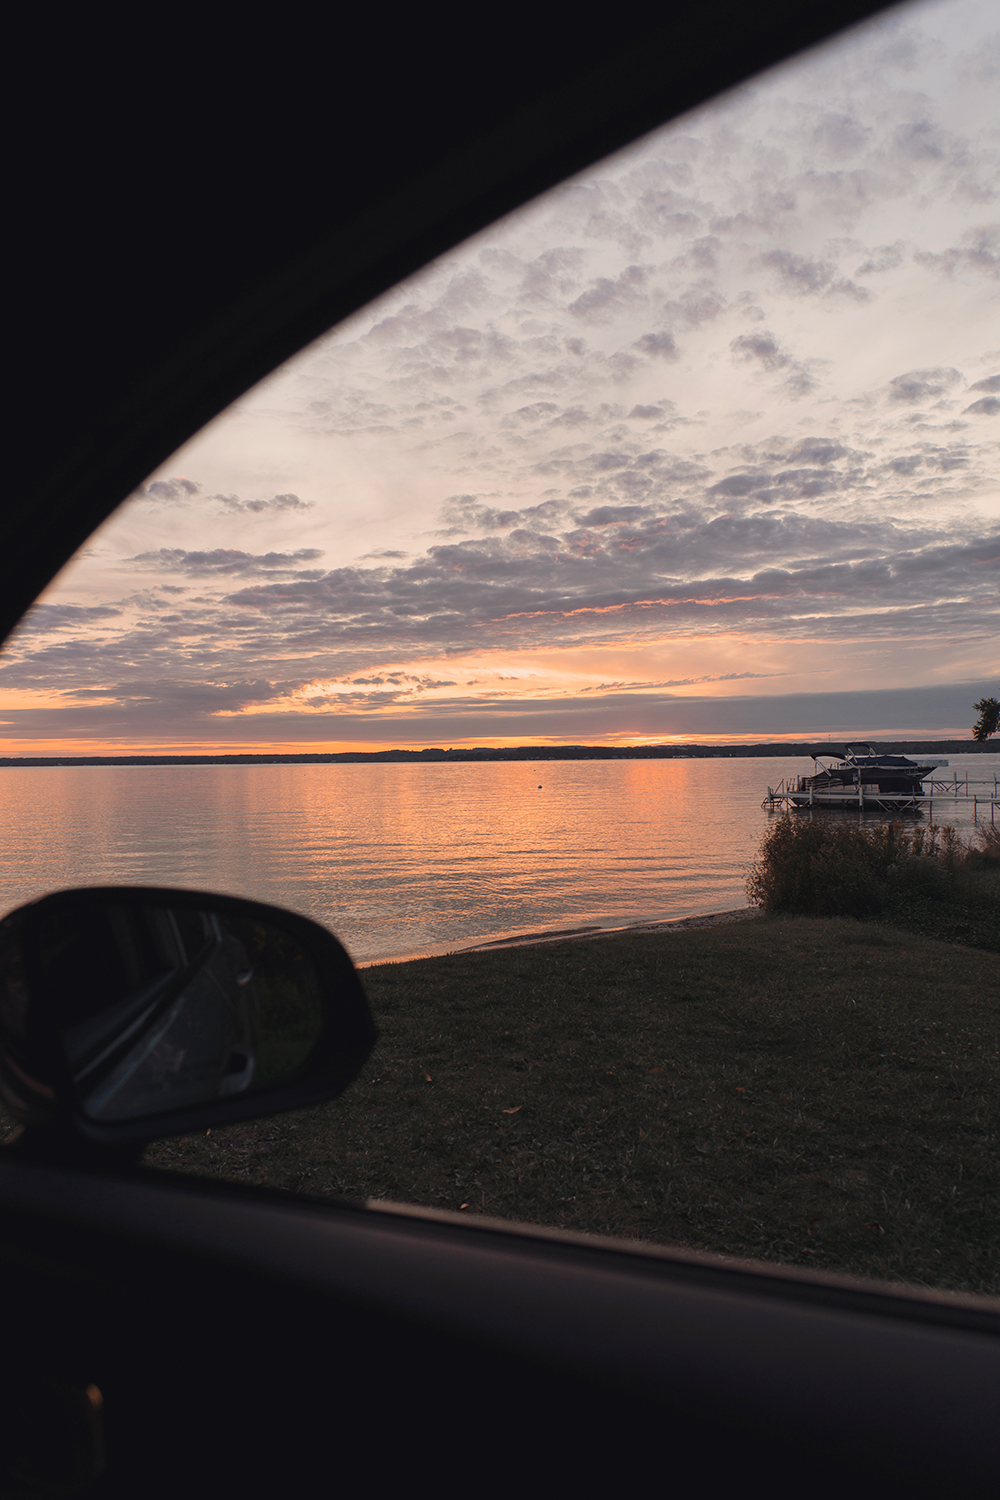 02volvo-car-mullettlake-cheboygan-michigan-roadtrip-travel